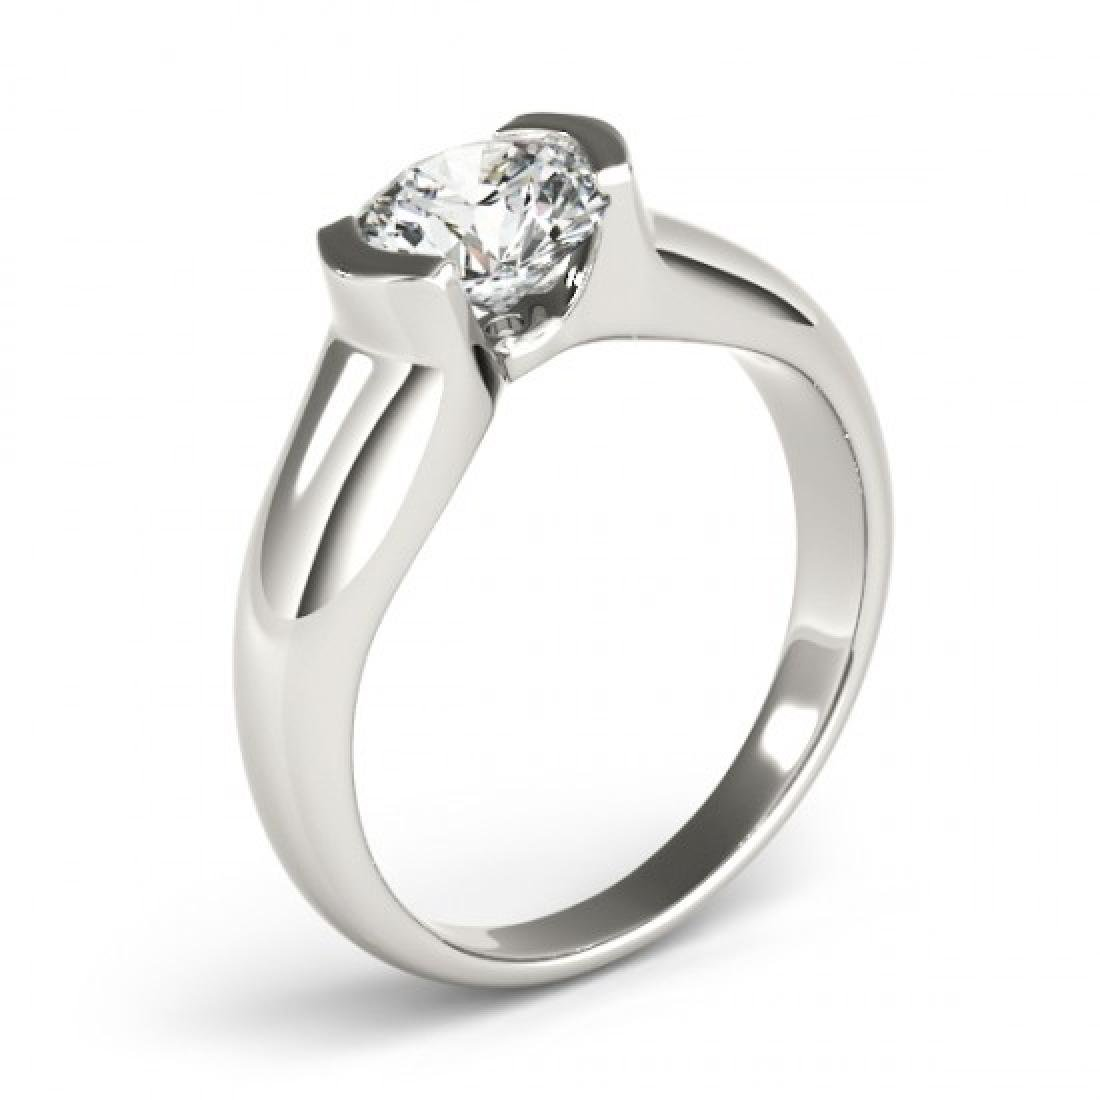 0.5 CTW Certified VS/SI Diamond Solitaire Ring 14K - 3